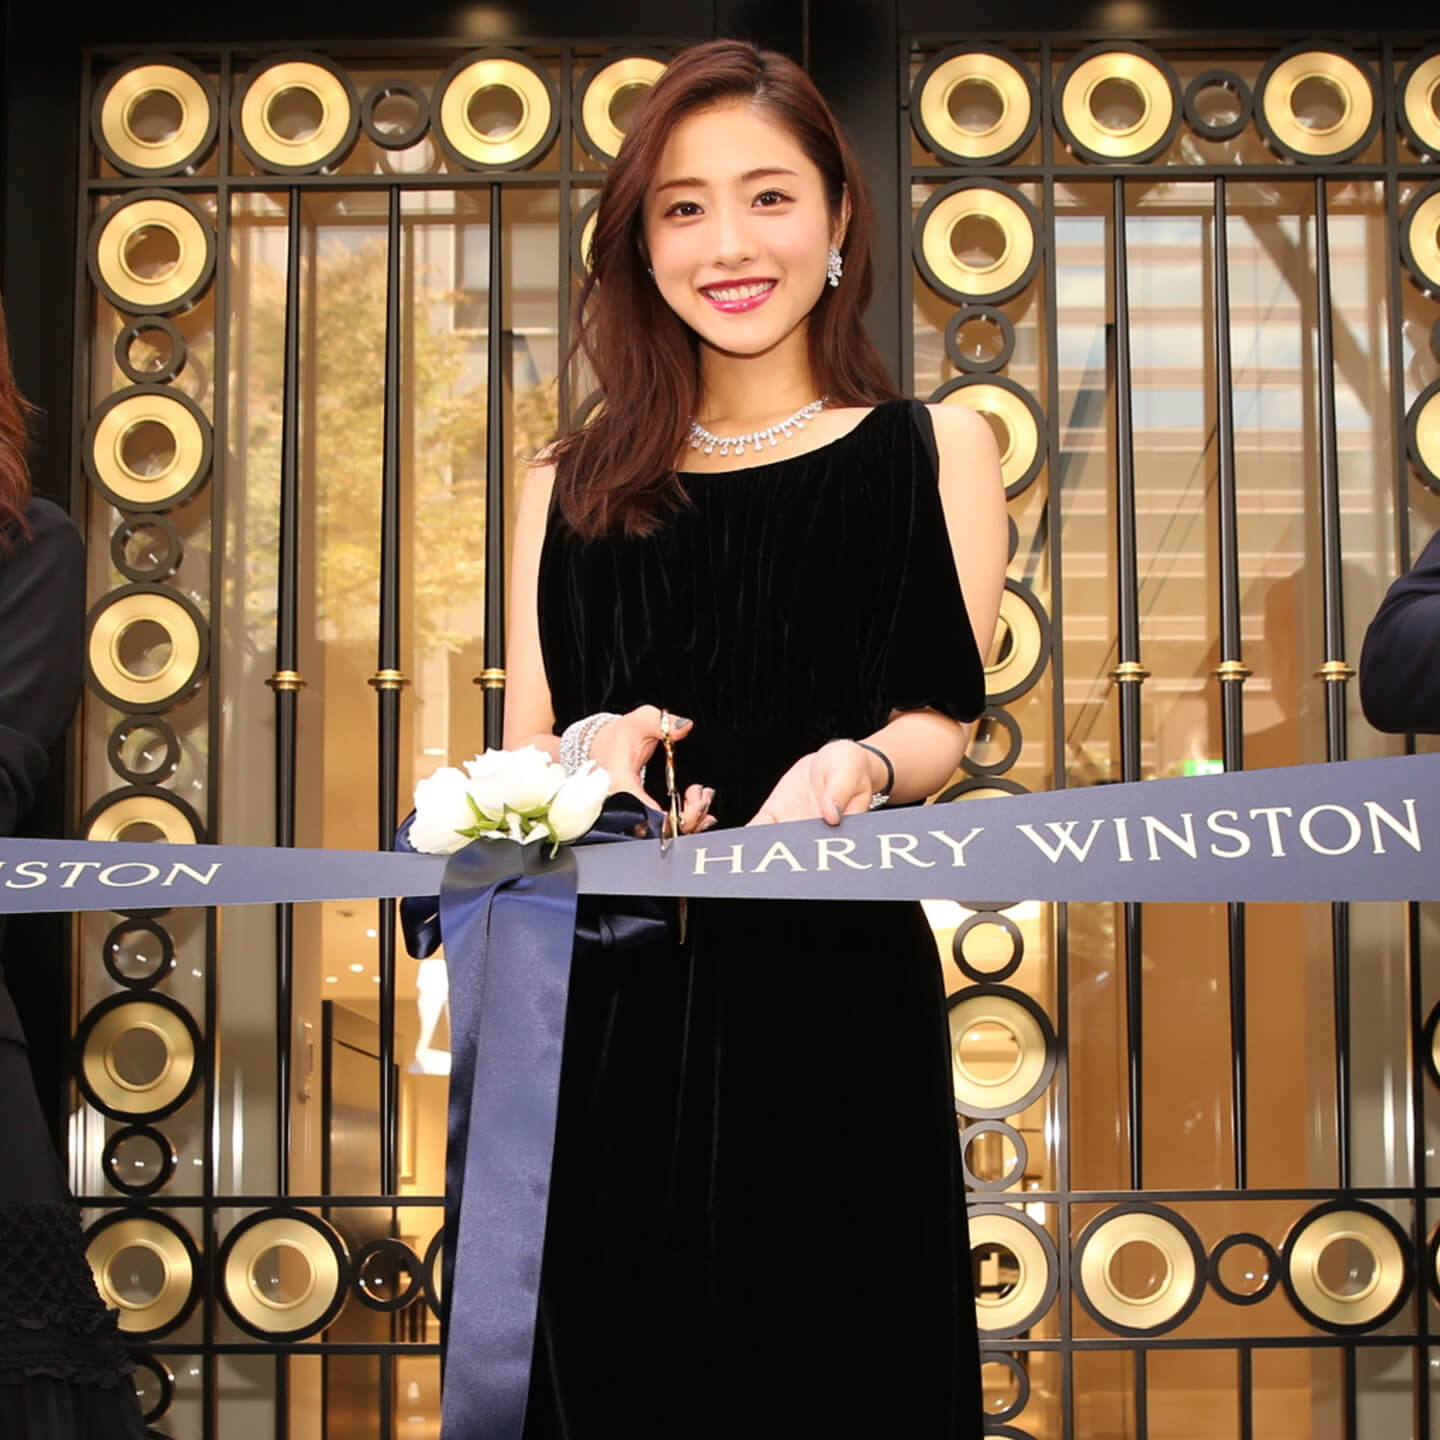 Harry Winston Reopens its Salon in Nagoya